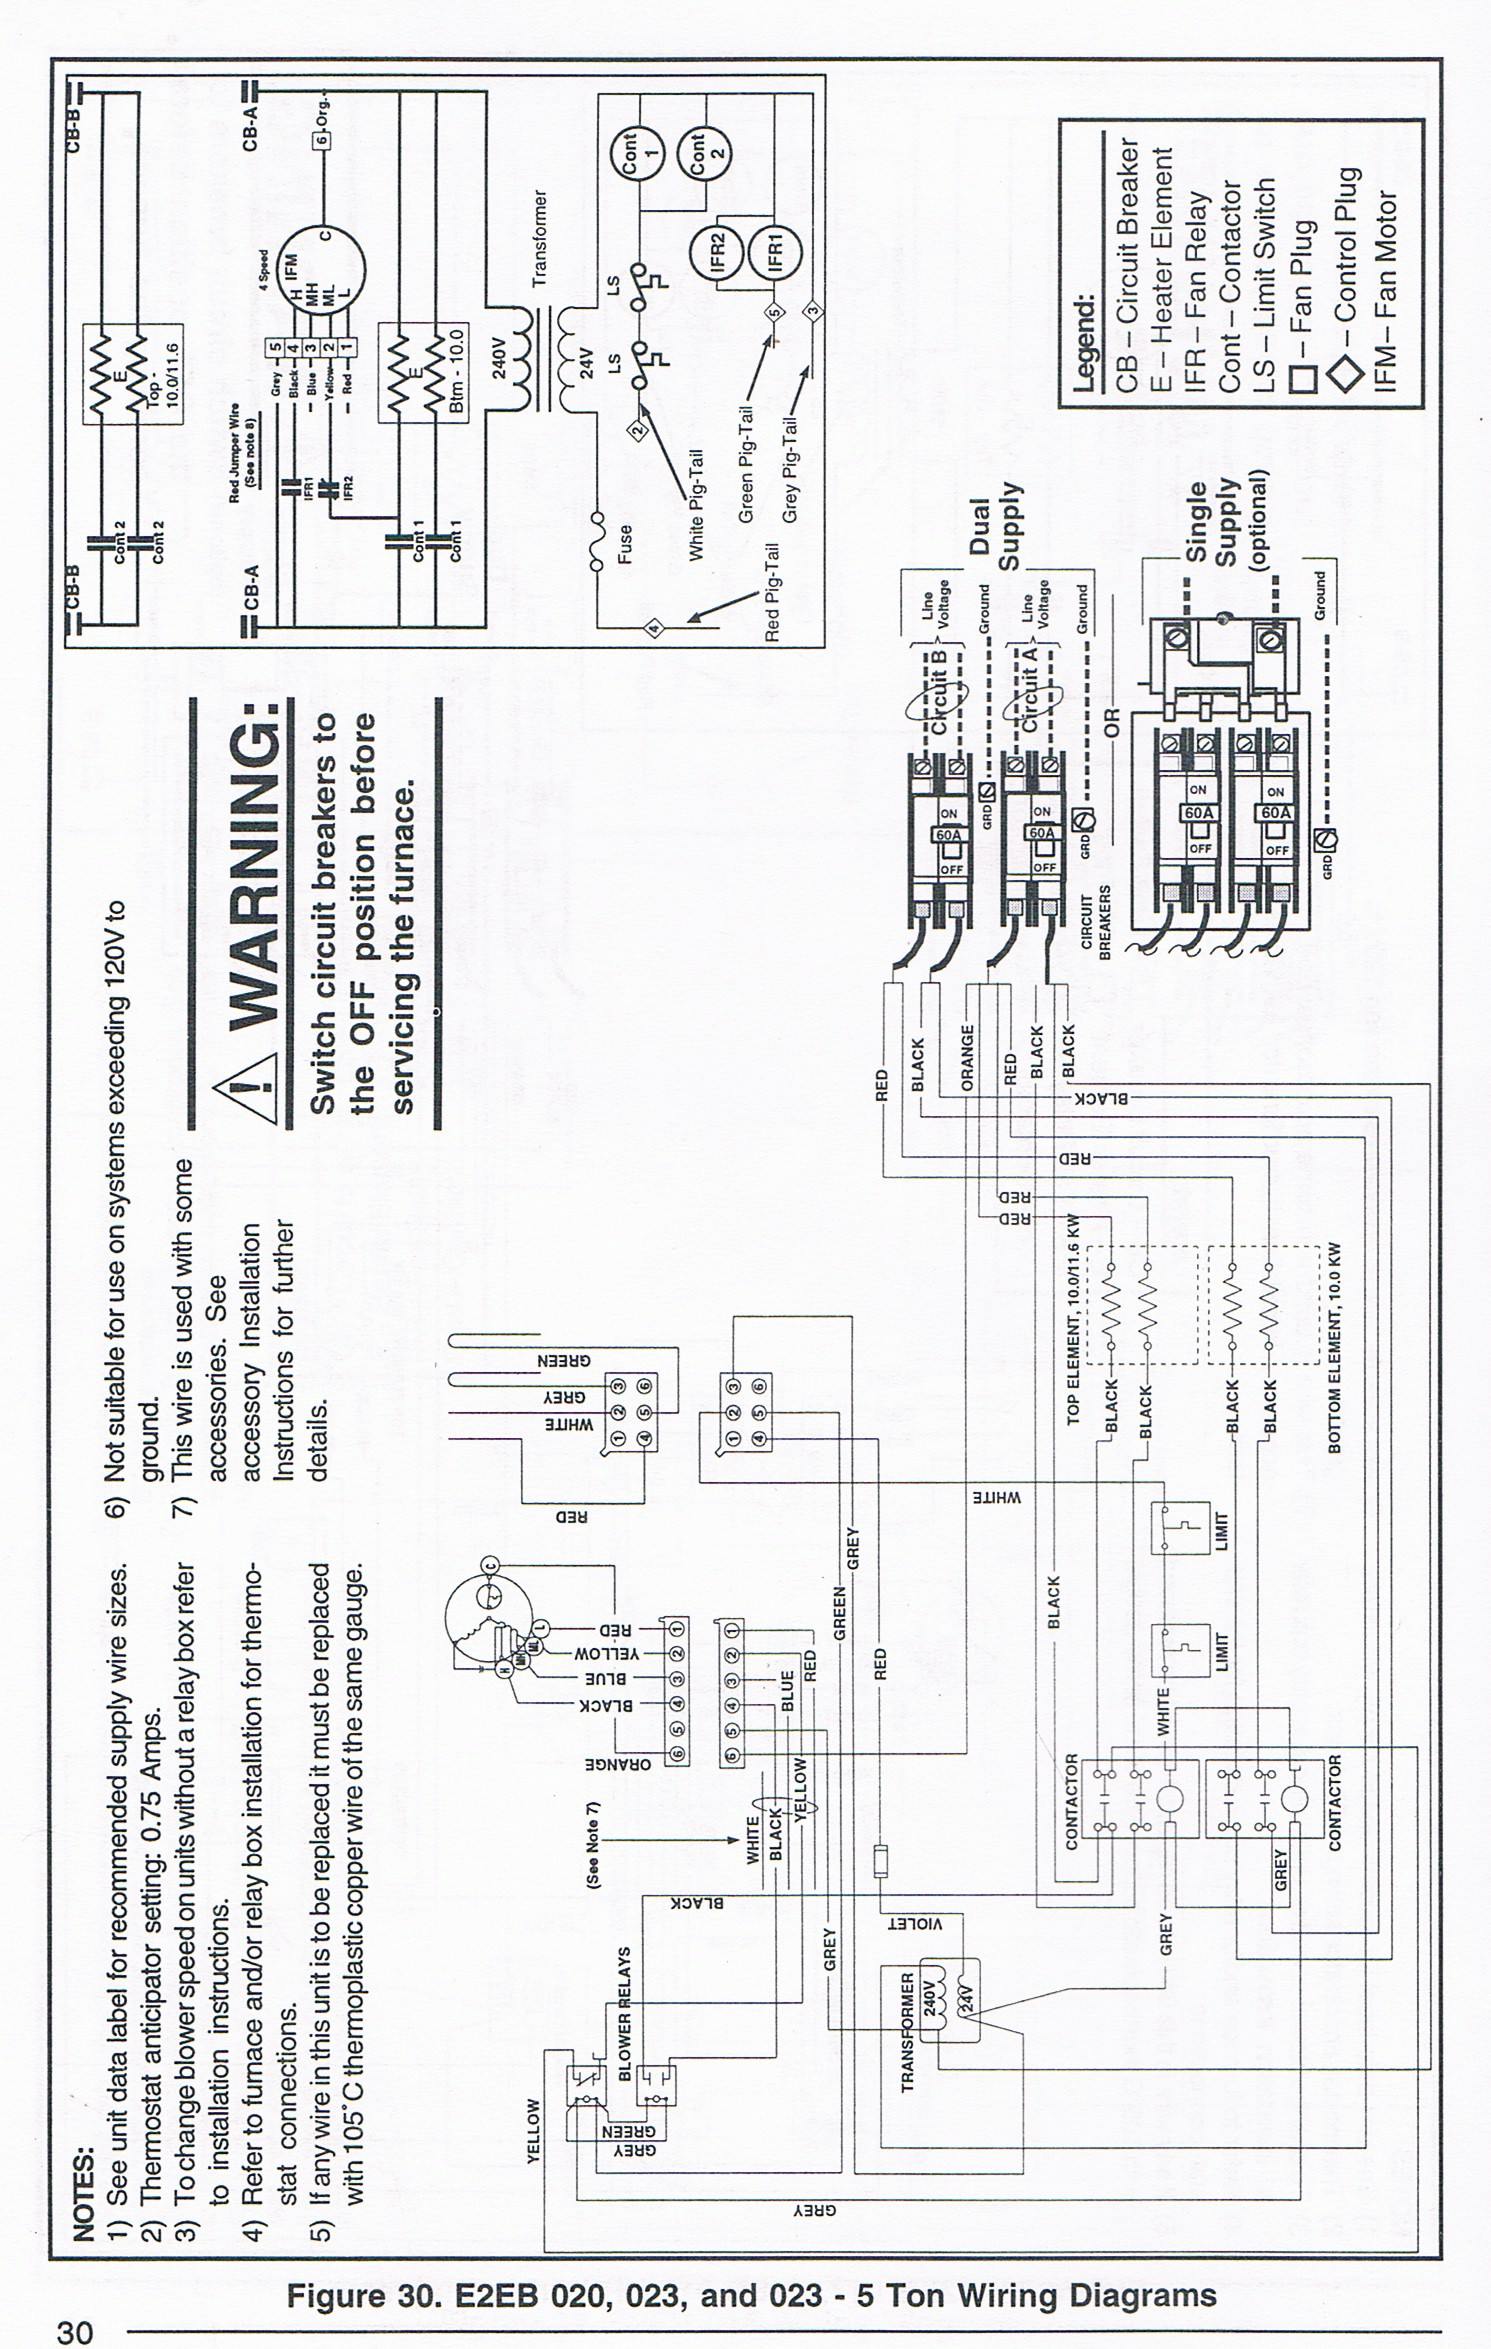 Nordyne Ecm Wiring Diagram